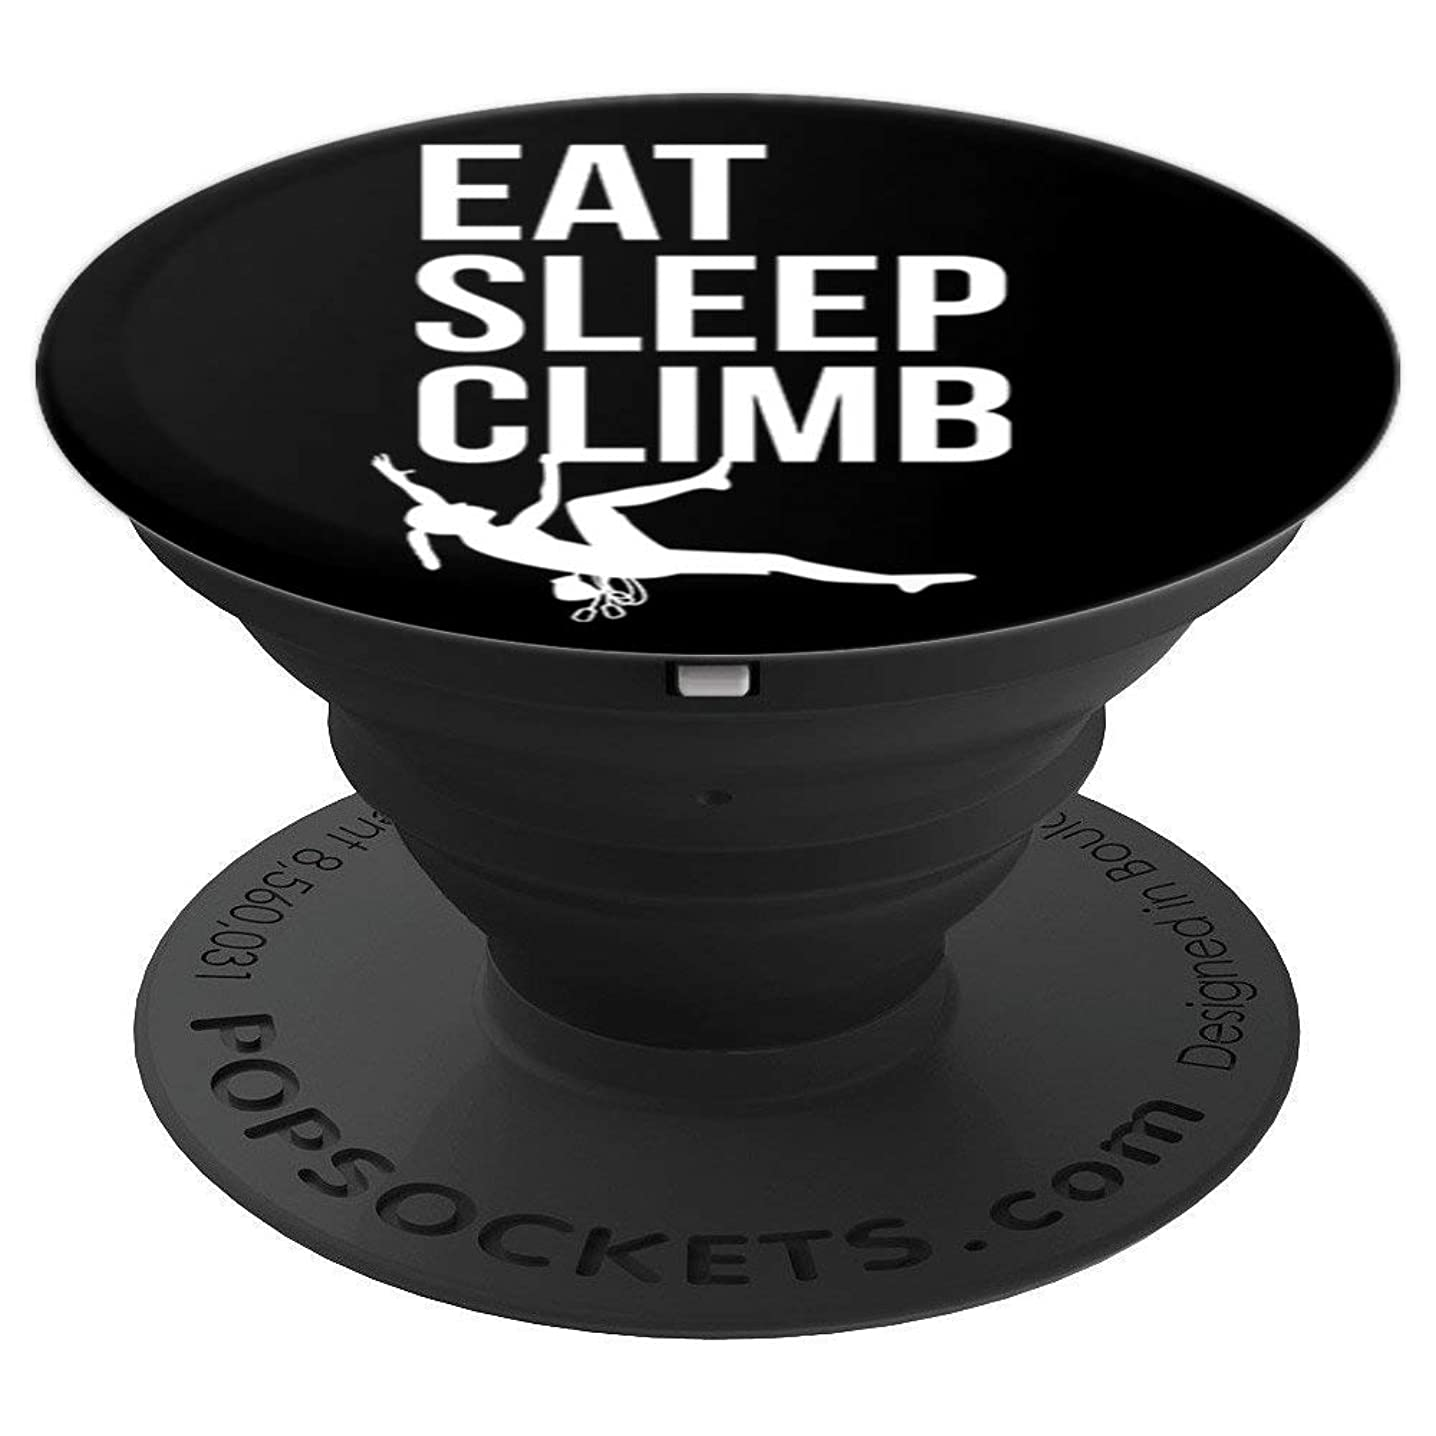 Eat Sleep Climb Rock Climber White Black Climbing Girl Gift - PopSockets Grip and Stand for Phones and Tablets